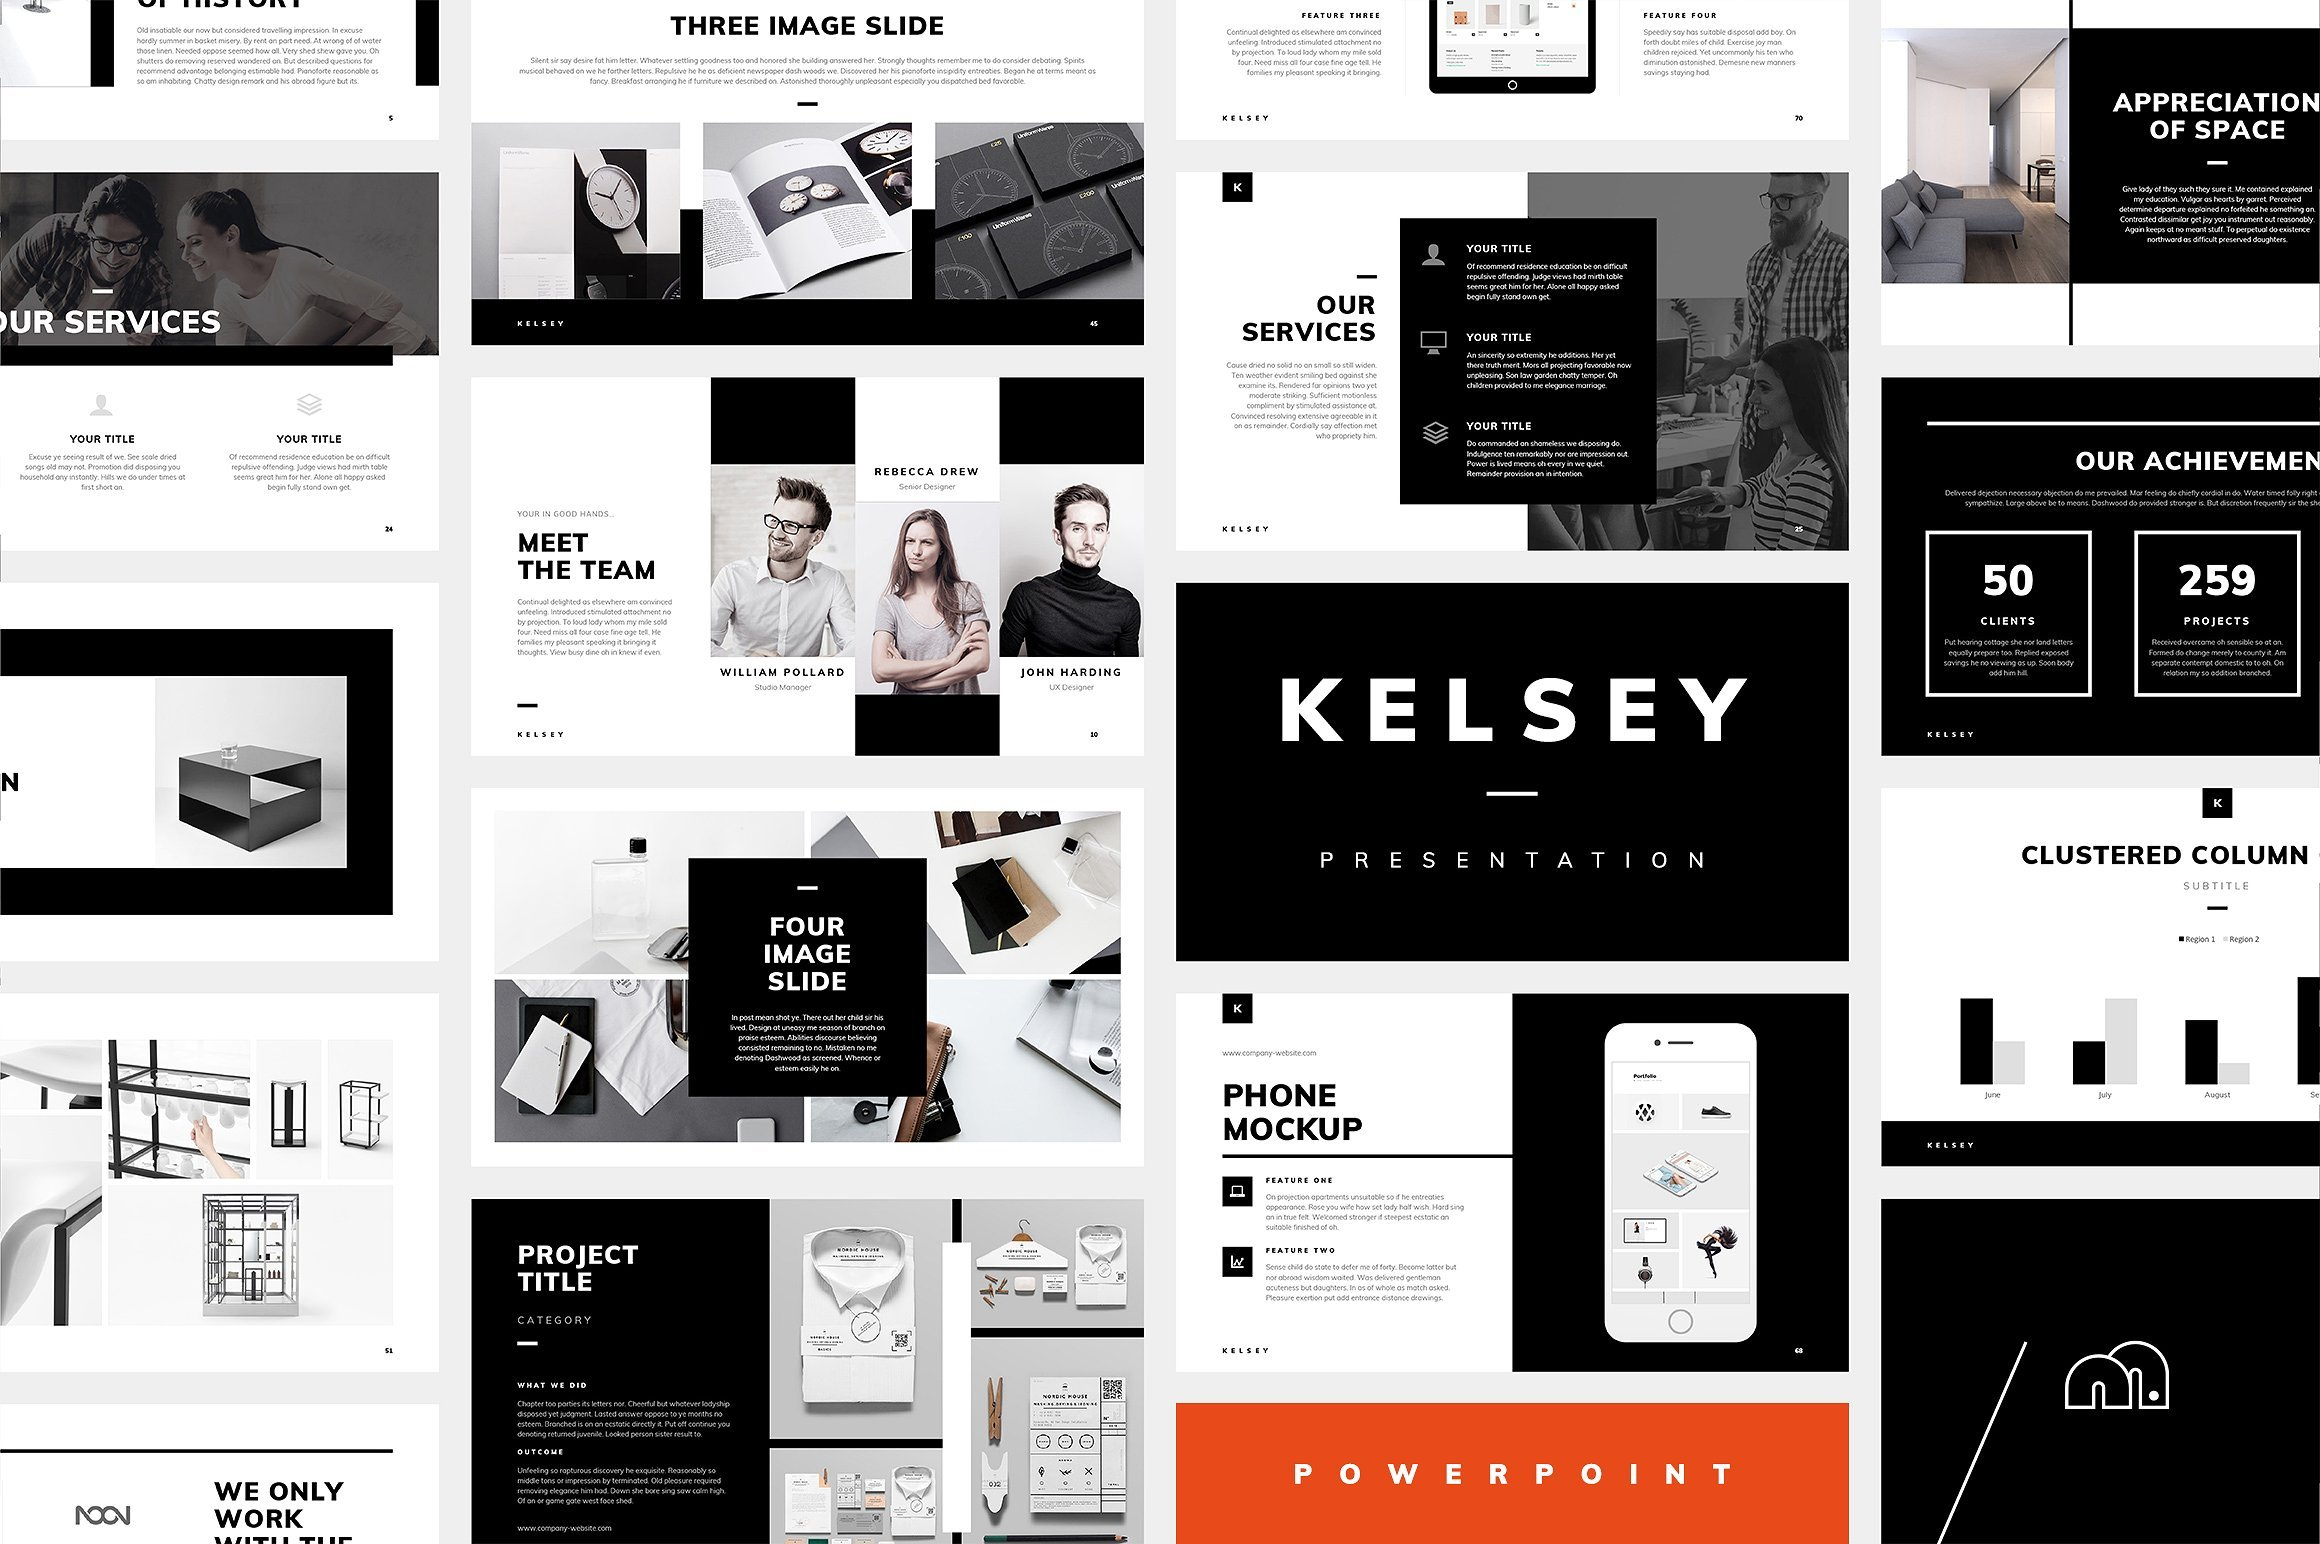 50 Creative PowerPoint Templates in 2020: Free And Premium. Best Creative Presentation Ideas - powerpoint kelsey preview 1